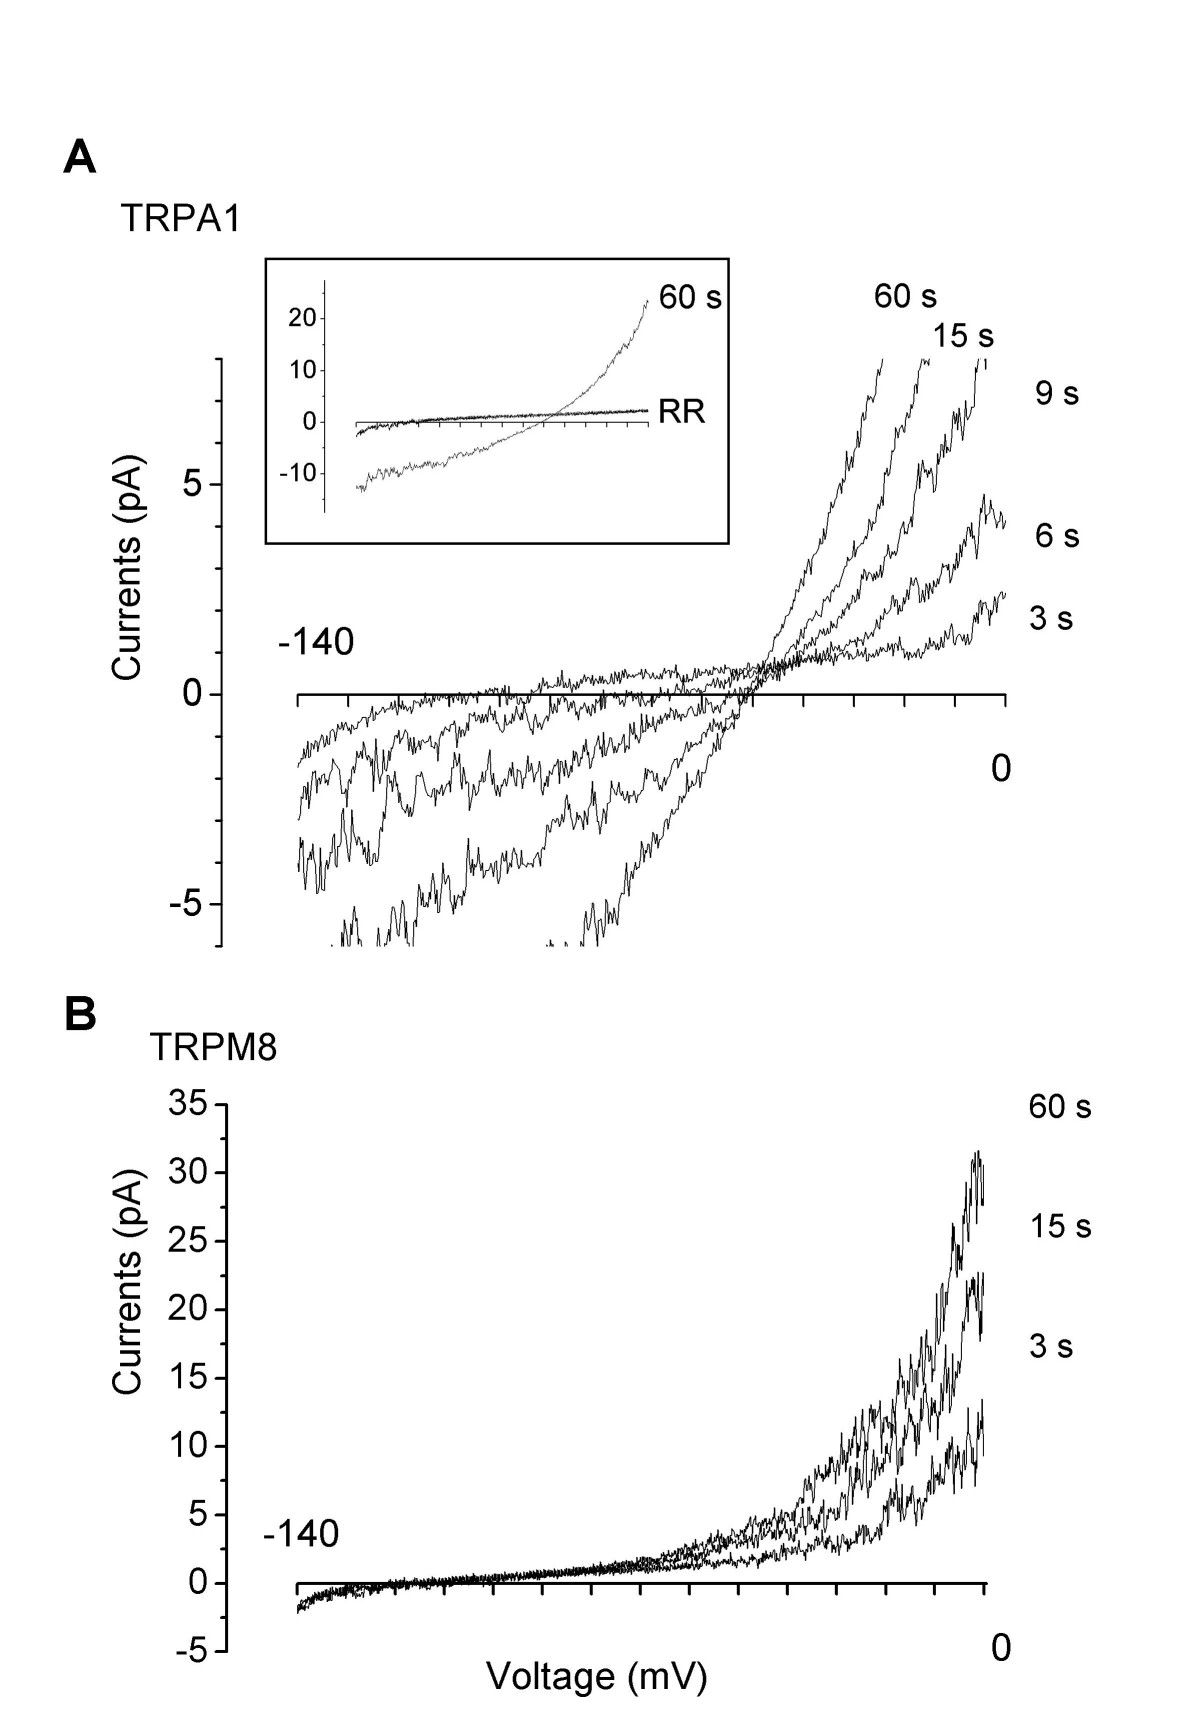 http://static-content.springer.com/image/art%3A10.1186%2F1744-8069-5-3/MediaObjects/12990_2008_Article_186_Fig3_HTML.jpg